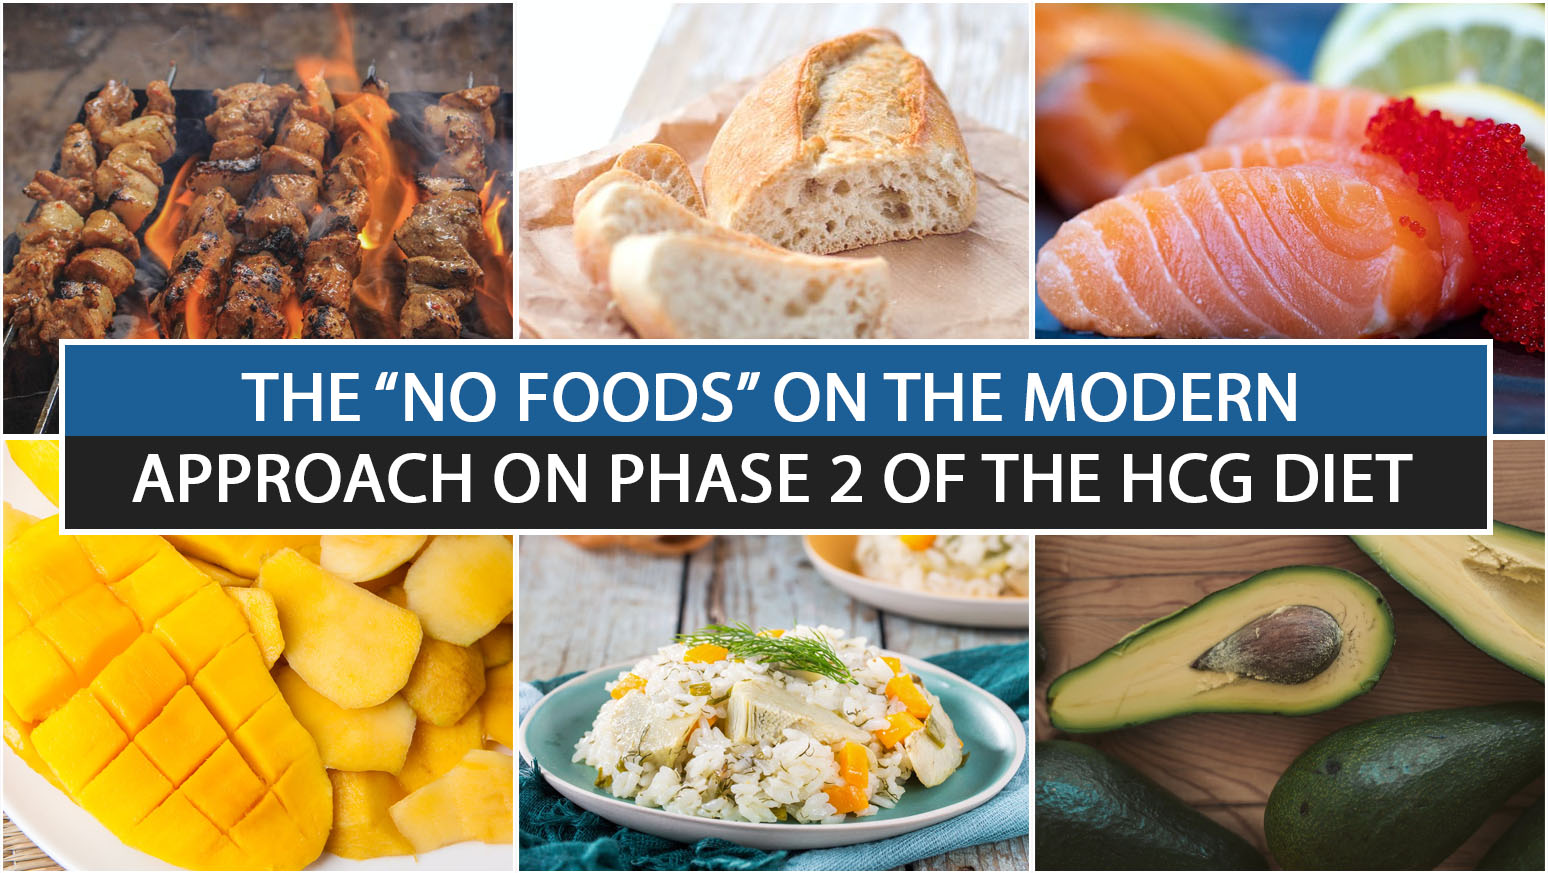 """THE """"NO FOODS"""" ON THE MODERN APPROACH ON PHASE 2 OF THE HCG DIET"""